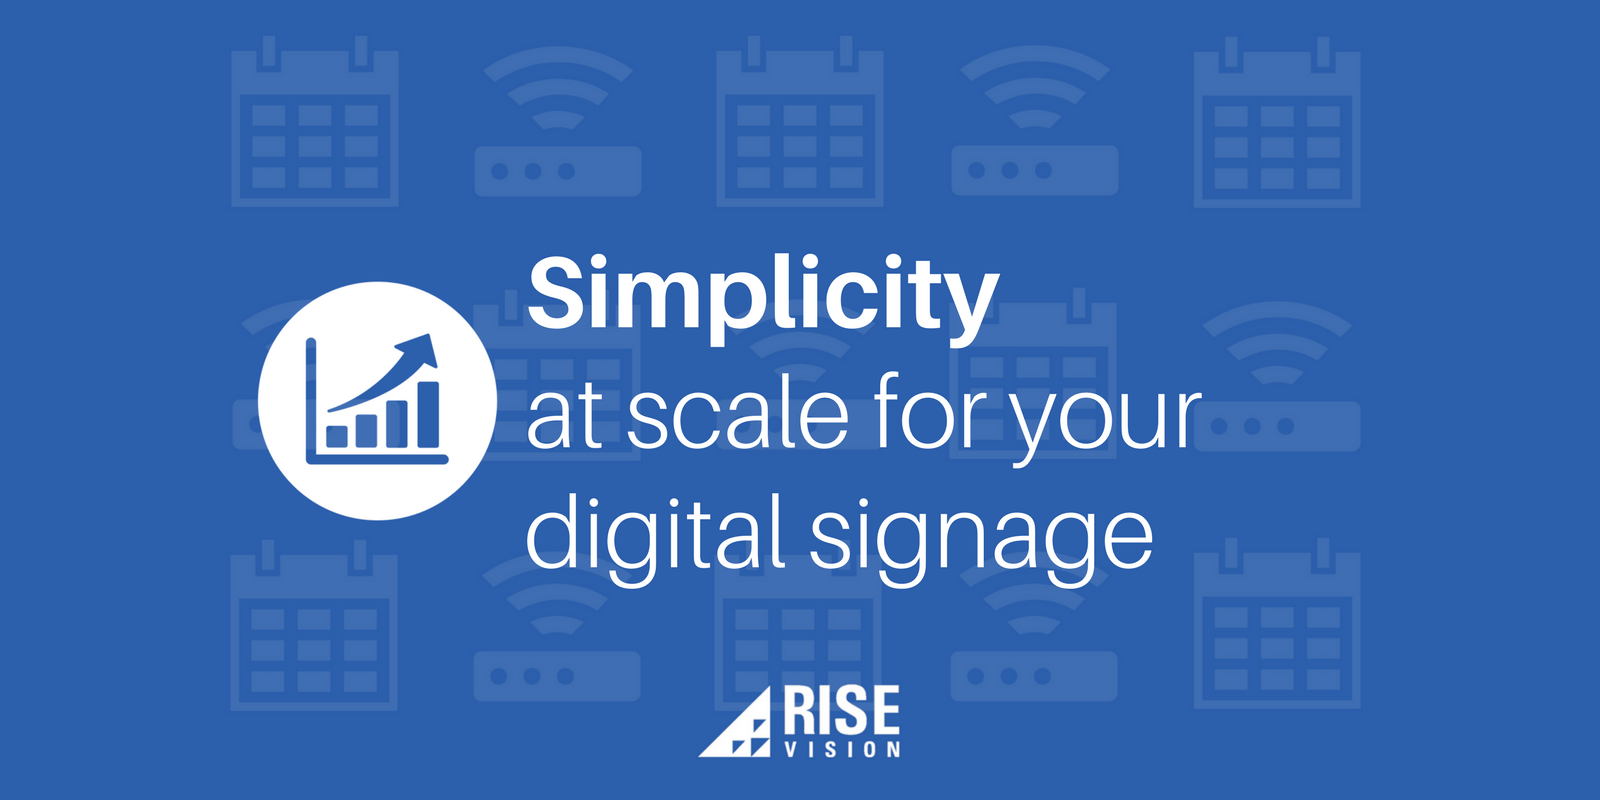 Rise Vision Digital Signage Education Scale Scaling.png